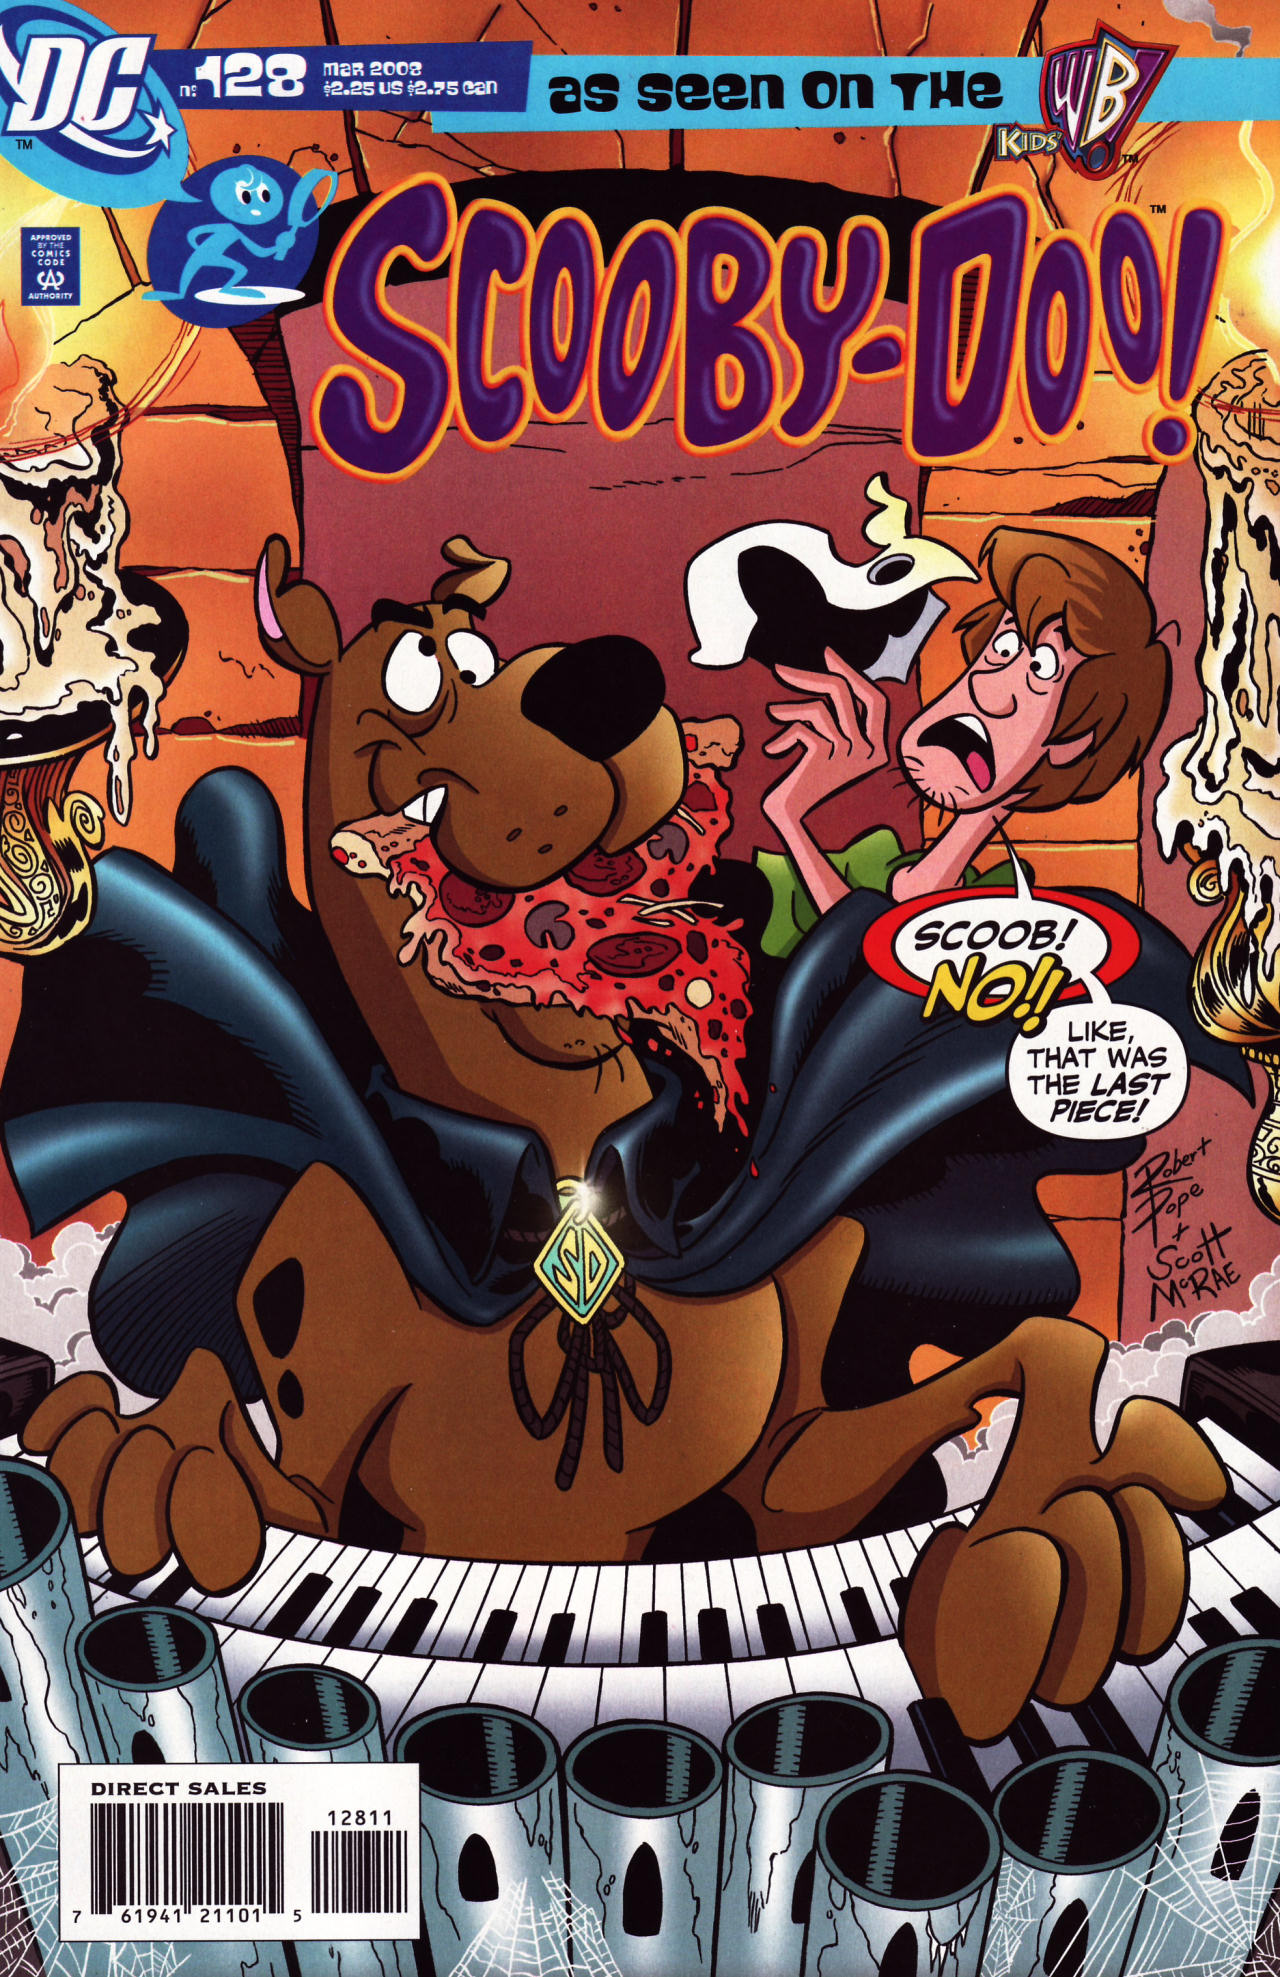 Read online Scooby-Doo (1997) comic -  Issue #128 - 1